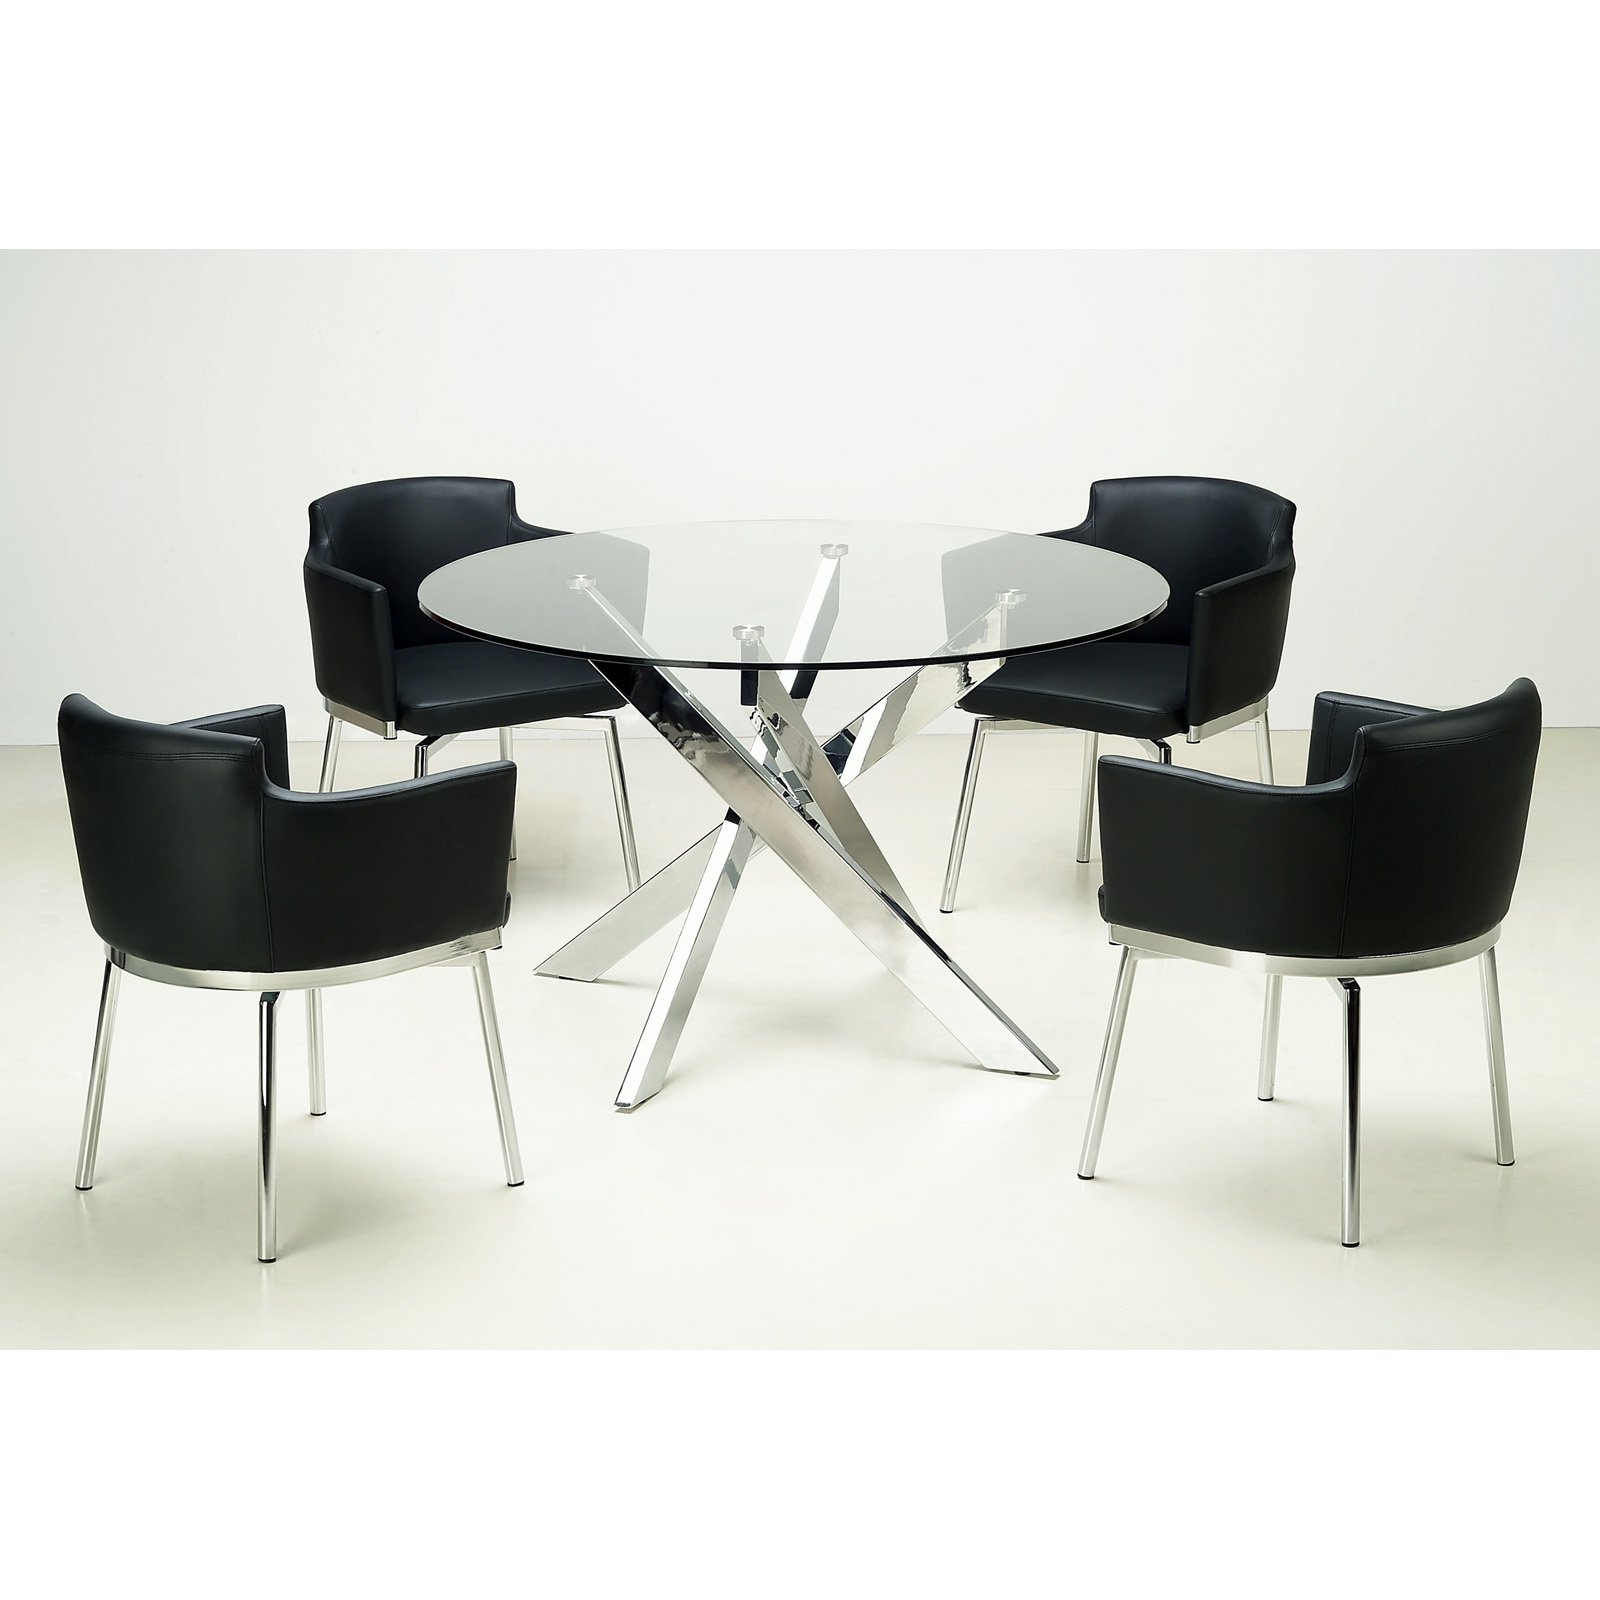 Ordinaire Chintaly Dusty 5 Piece Round Glass Dining Table Set   Walmart.com